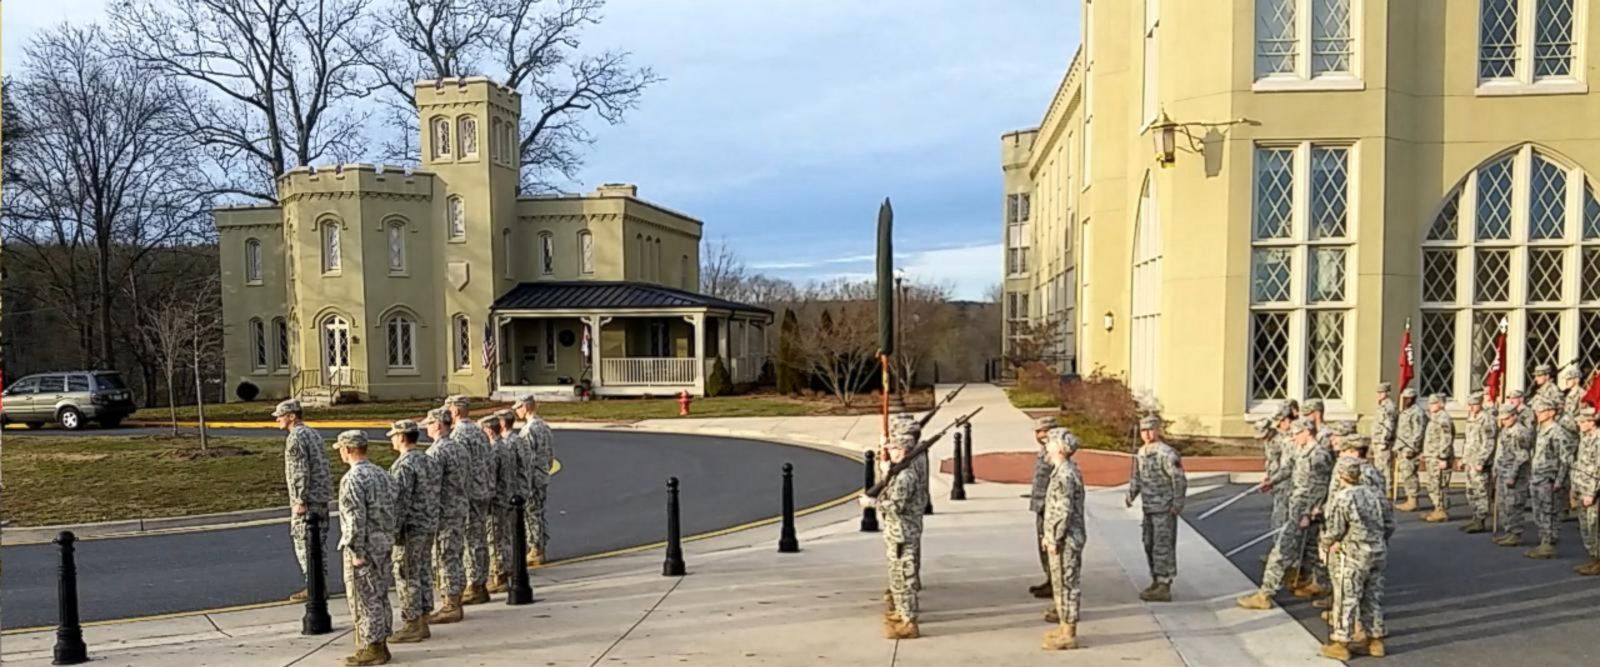 VIDEO: Virginia Military Institute Cadets Rehearse for Inauguration Parade